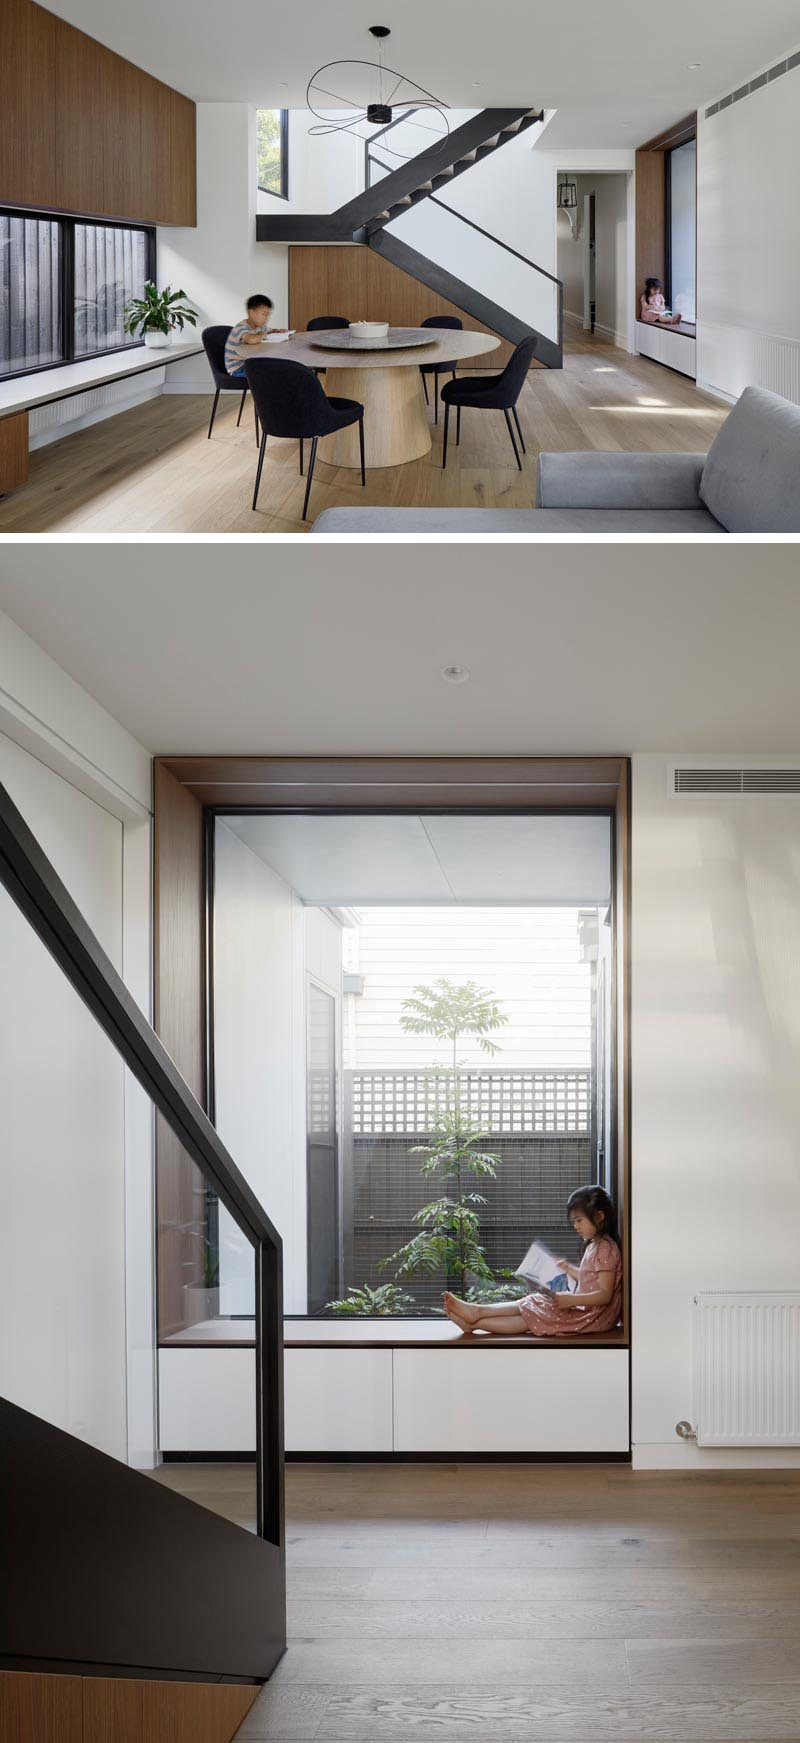 Adjacent to the living room in this modern house is an open dining room with a round table and minimalist sculptural pendant light. Steel stairs lead up to the new second floor, while at the bottom of the stairs, there's a built-in wood-lined window seat that looks out to a small garden at the side of the home. #ModernDiningRoom #WindowSeat #BuiltInWindowSeat